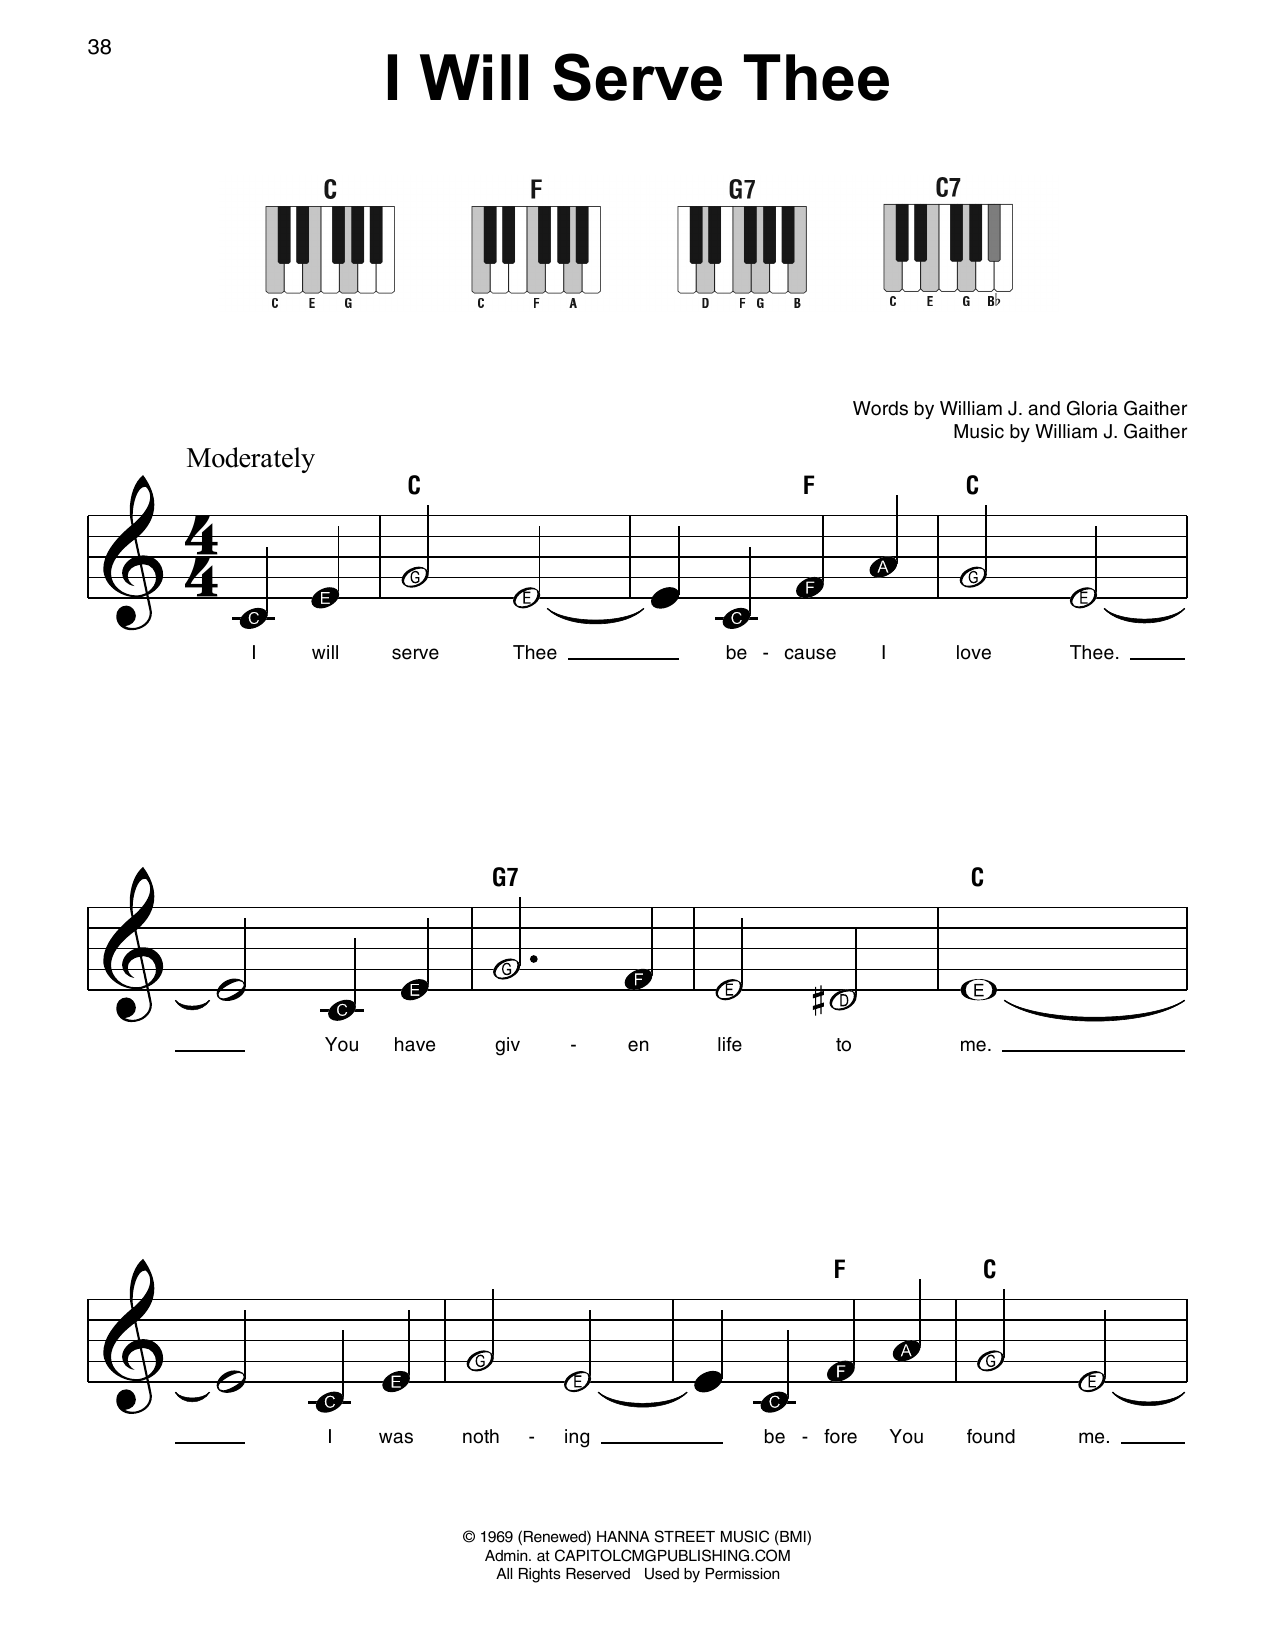 William J. Gaither I Will Serve Thee sheet music notes and chords. Download Printable PDF.